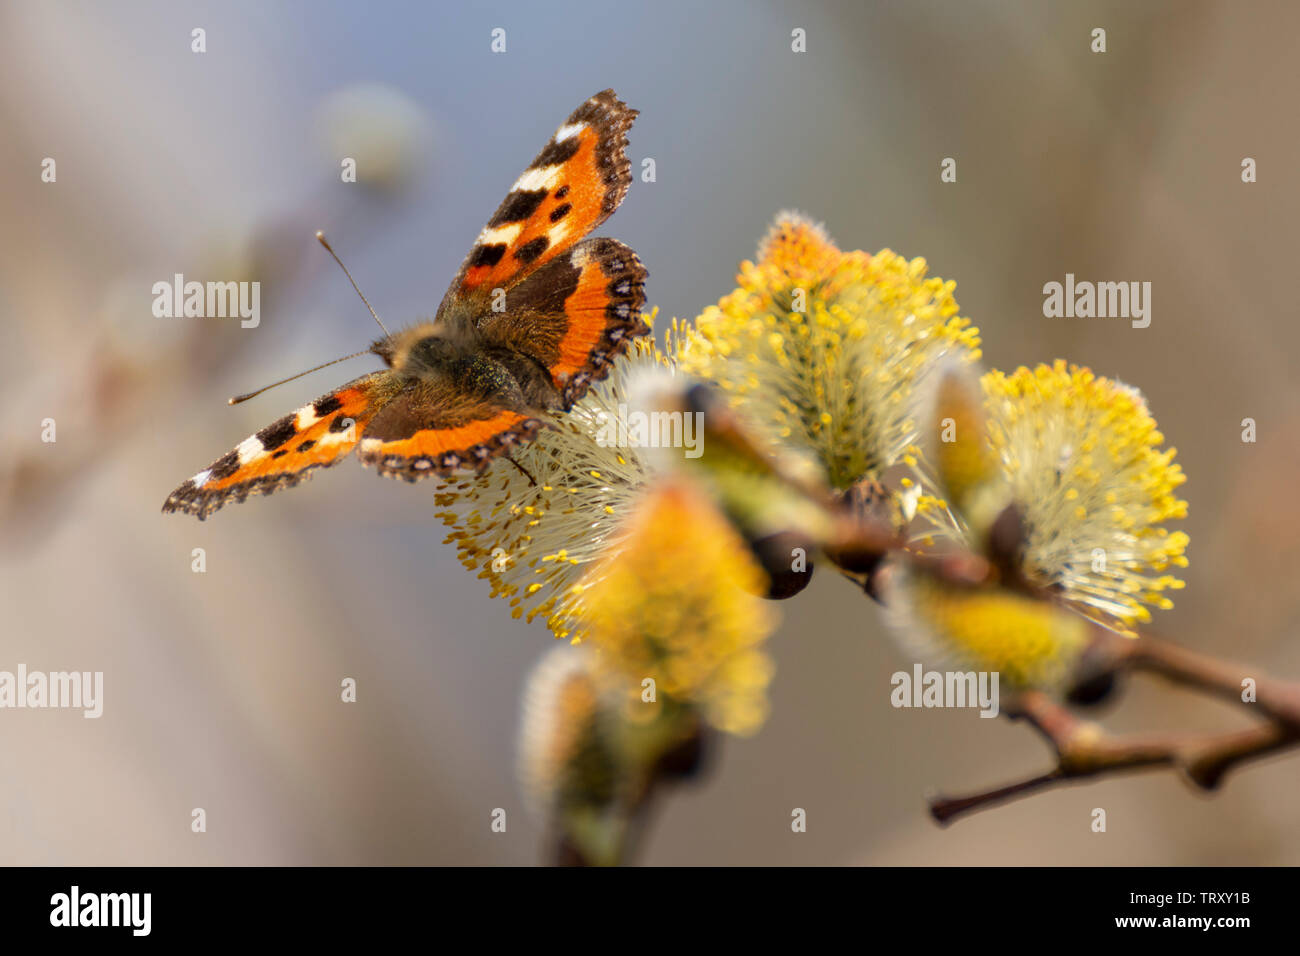 Tortoiseshell (Aglais urticae) butterfly sitting on a Sallow twig, picture from Northern Sweden. - Stock Image